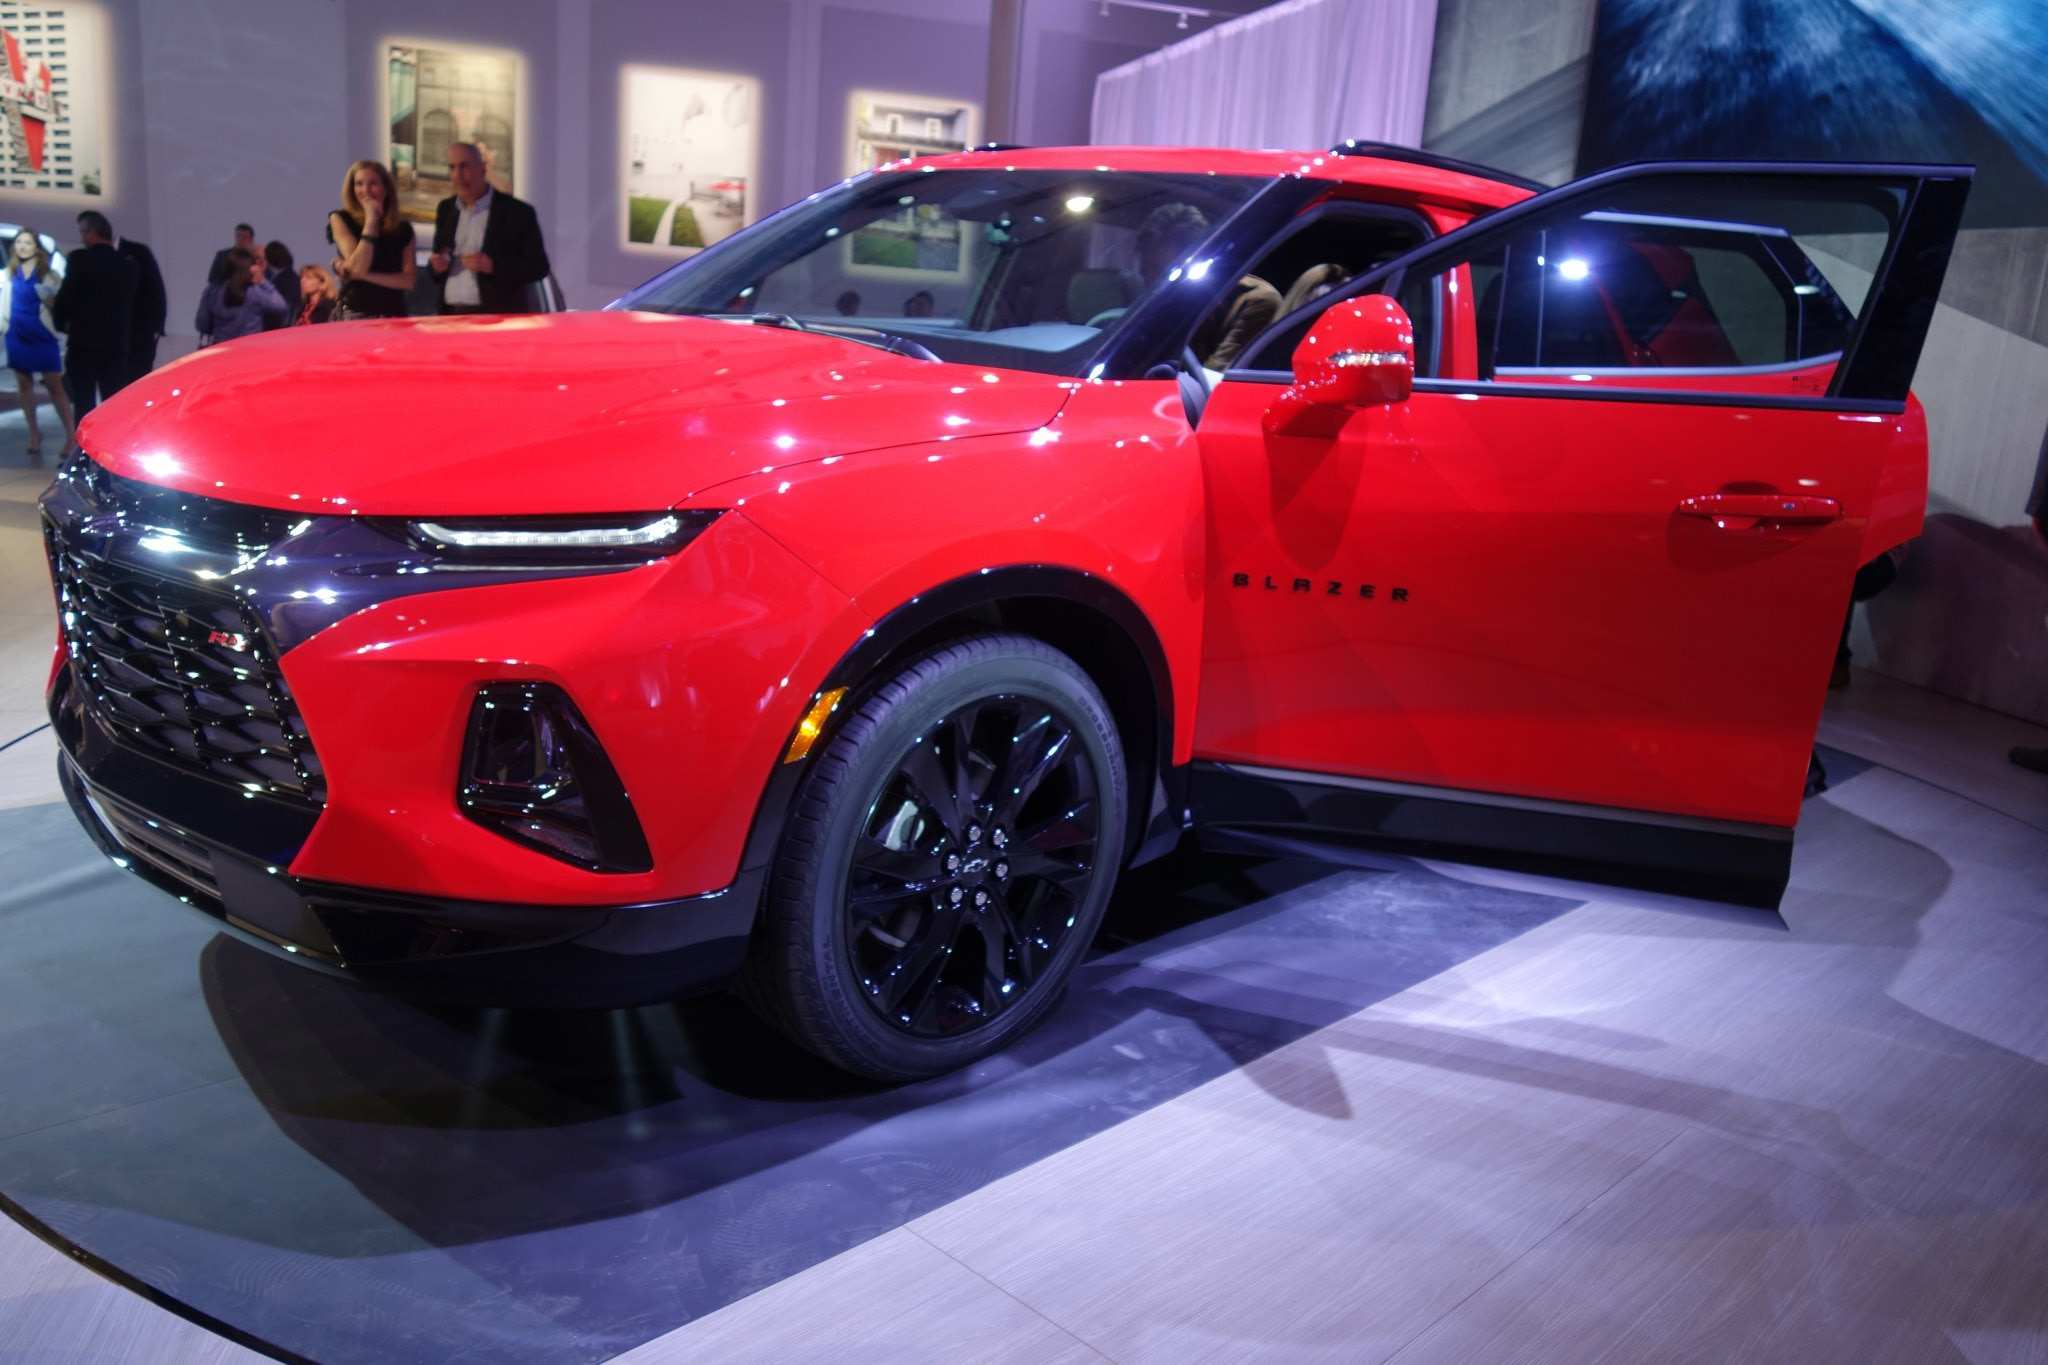 86 All New Chevrolet Blazer 2020 Ss With 500Hp New Review with Chevrolet Blazer 2020 Ss With 500Hp